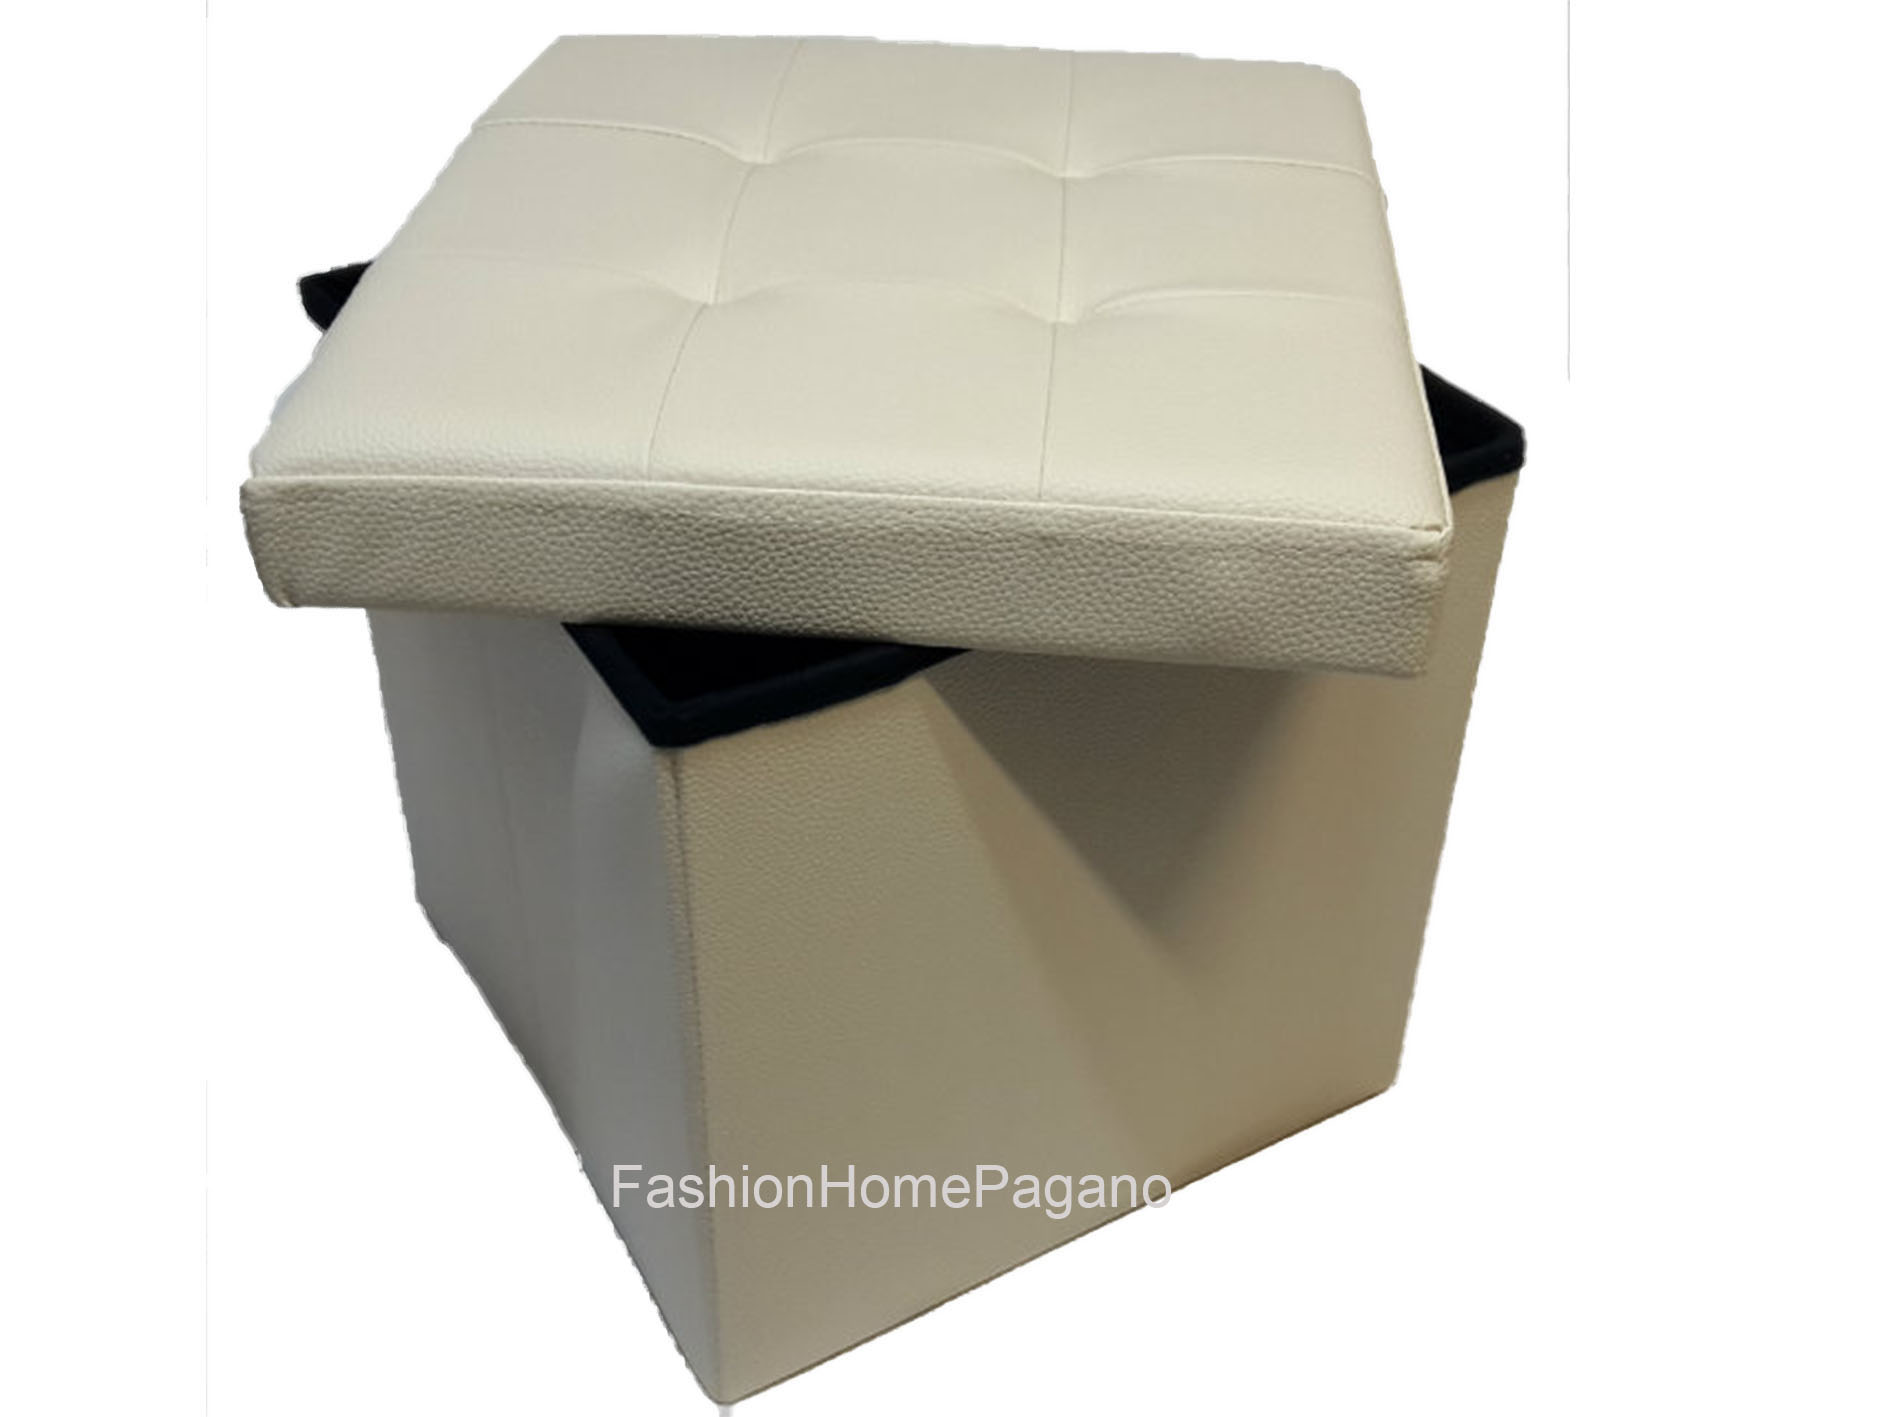 FHP-01449 - Puff Box - fashion home pagano - Puff box simil pelle ...